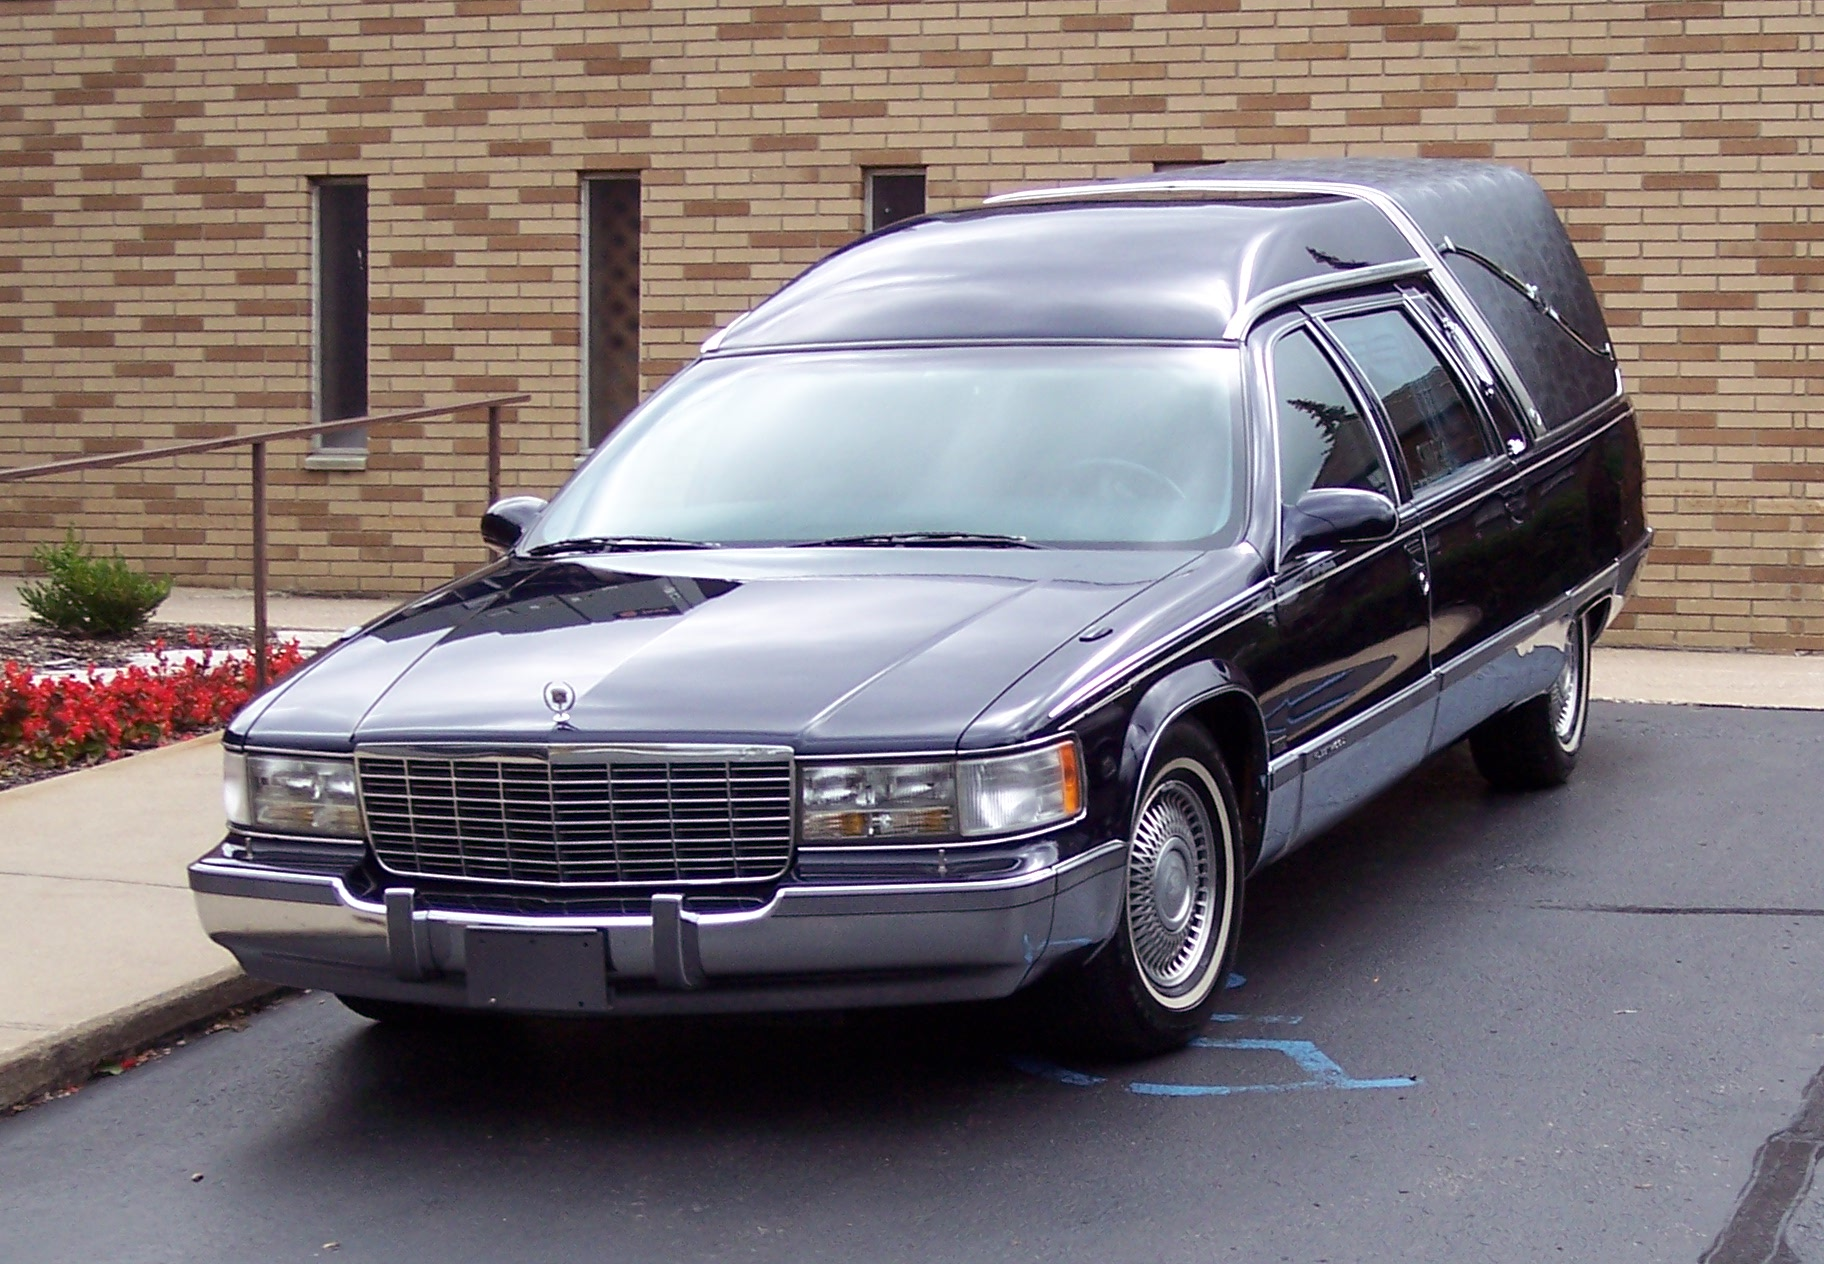 File:Cadillac Fleetwood hearse 1990s.jpg - Wikimedia Commons